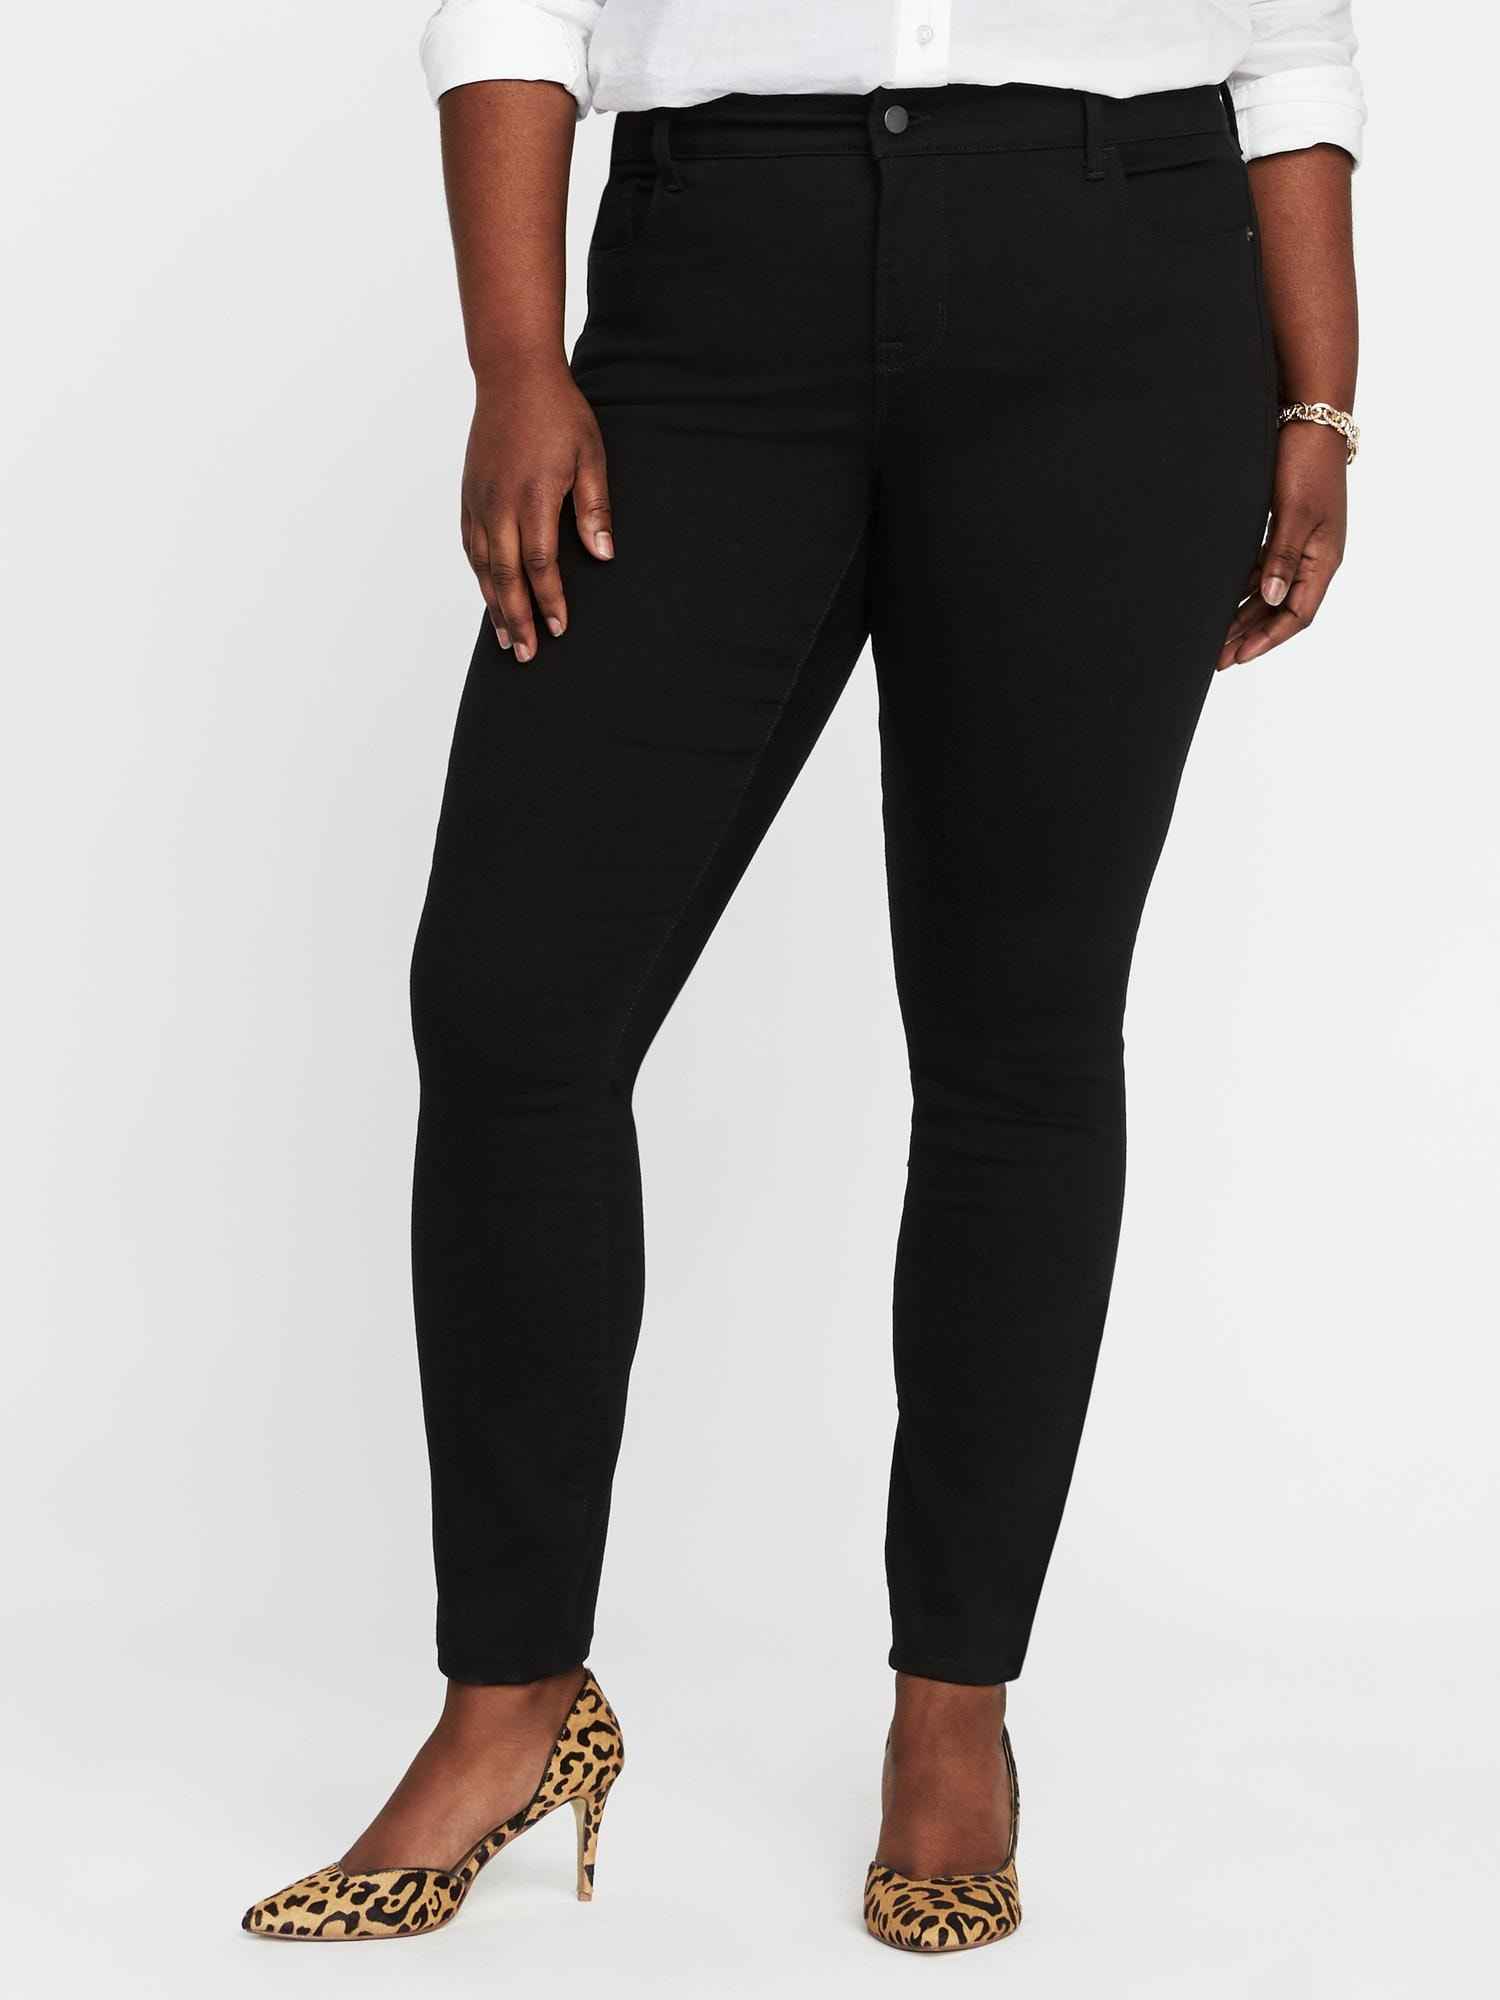 55a6de0d9fa2 Smooth   Slim High-Rise Plus-Size Rockstar Jeans